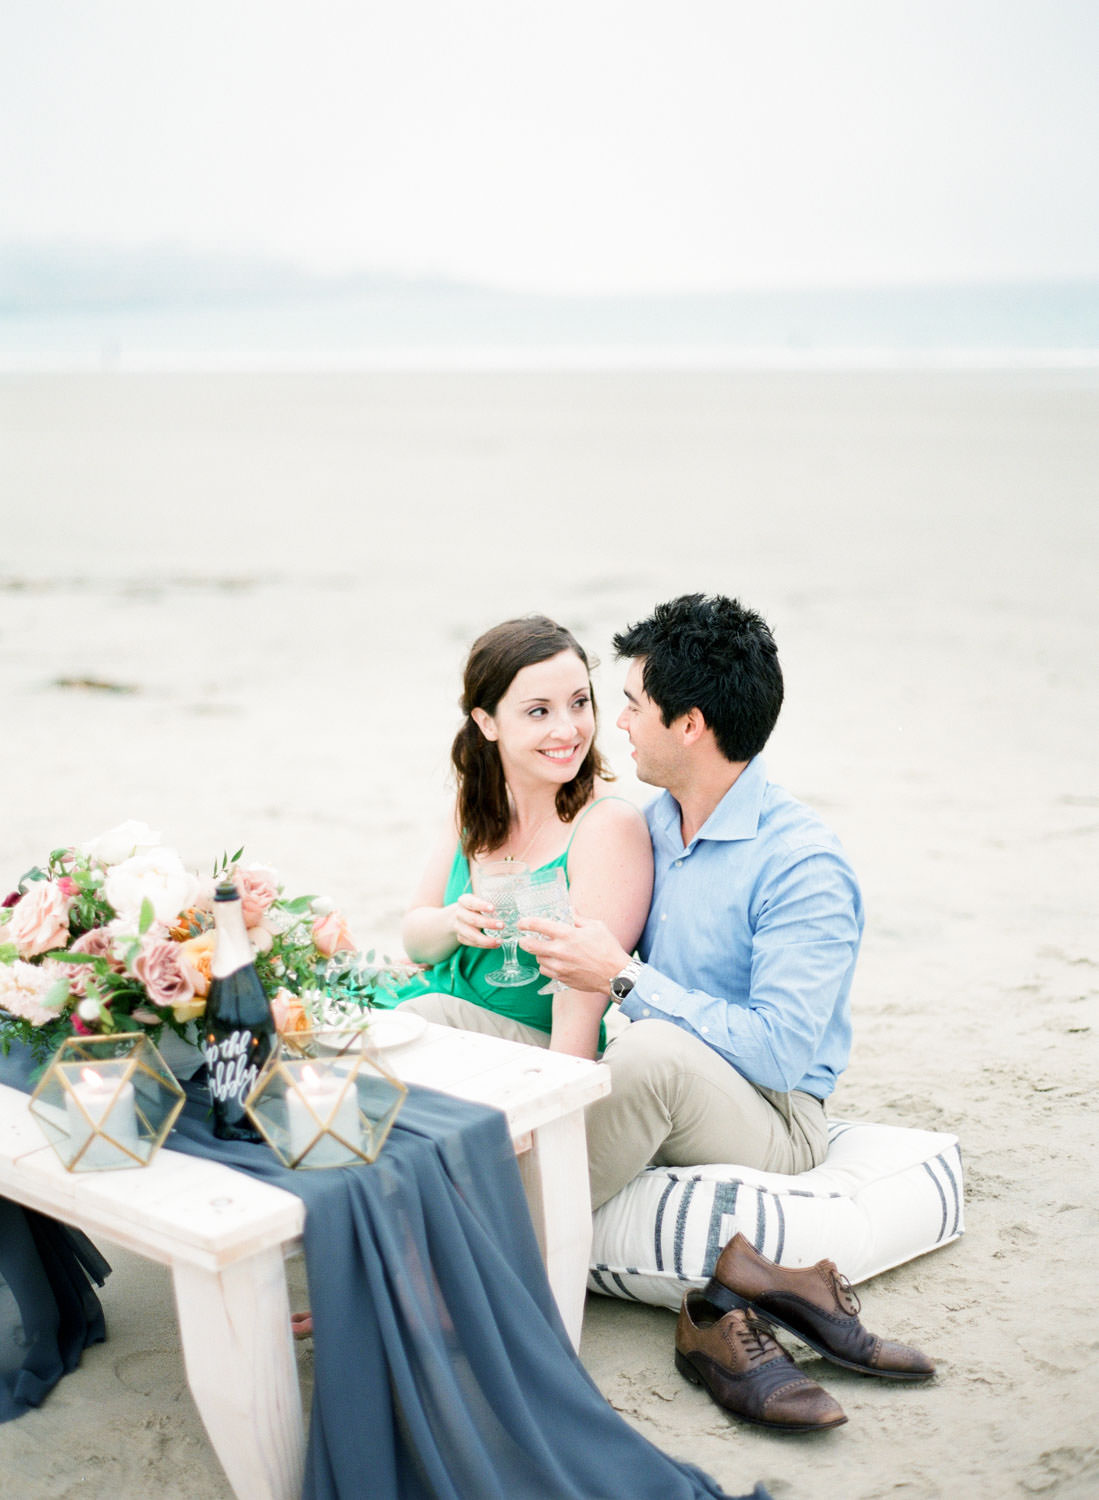 Green dress, Styled engagement shoot in San Diego, Champagne picnic captured on 400h film Contax 645 of a white table with deep blue silk runner and a flower arrangement with calligraphy champagne bottle and geometric candle containers, Cavin Elizabeth Photography